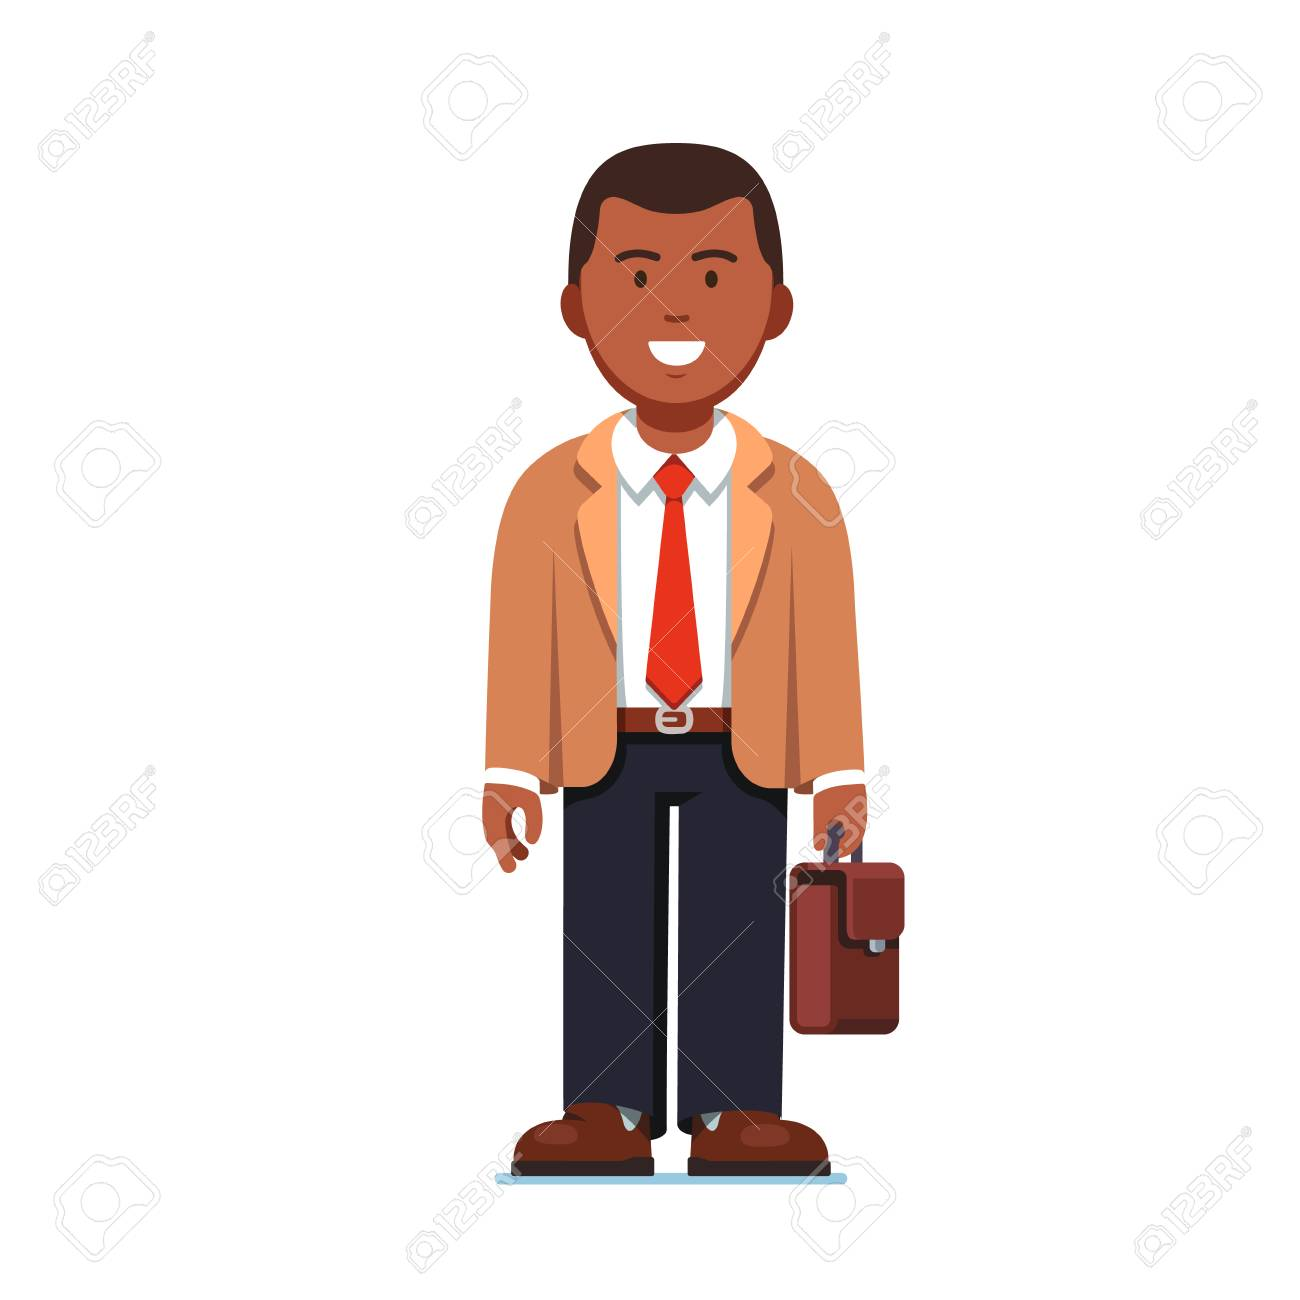 Afro American business man standing with suitcase.